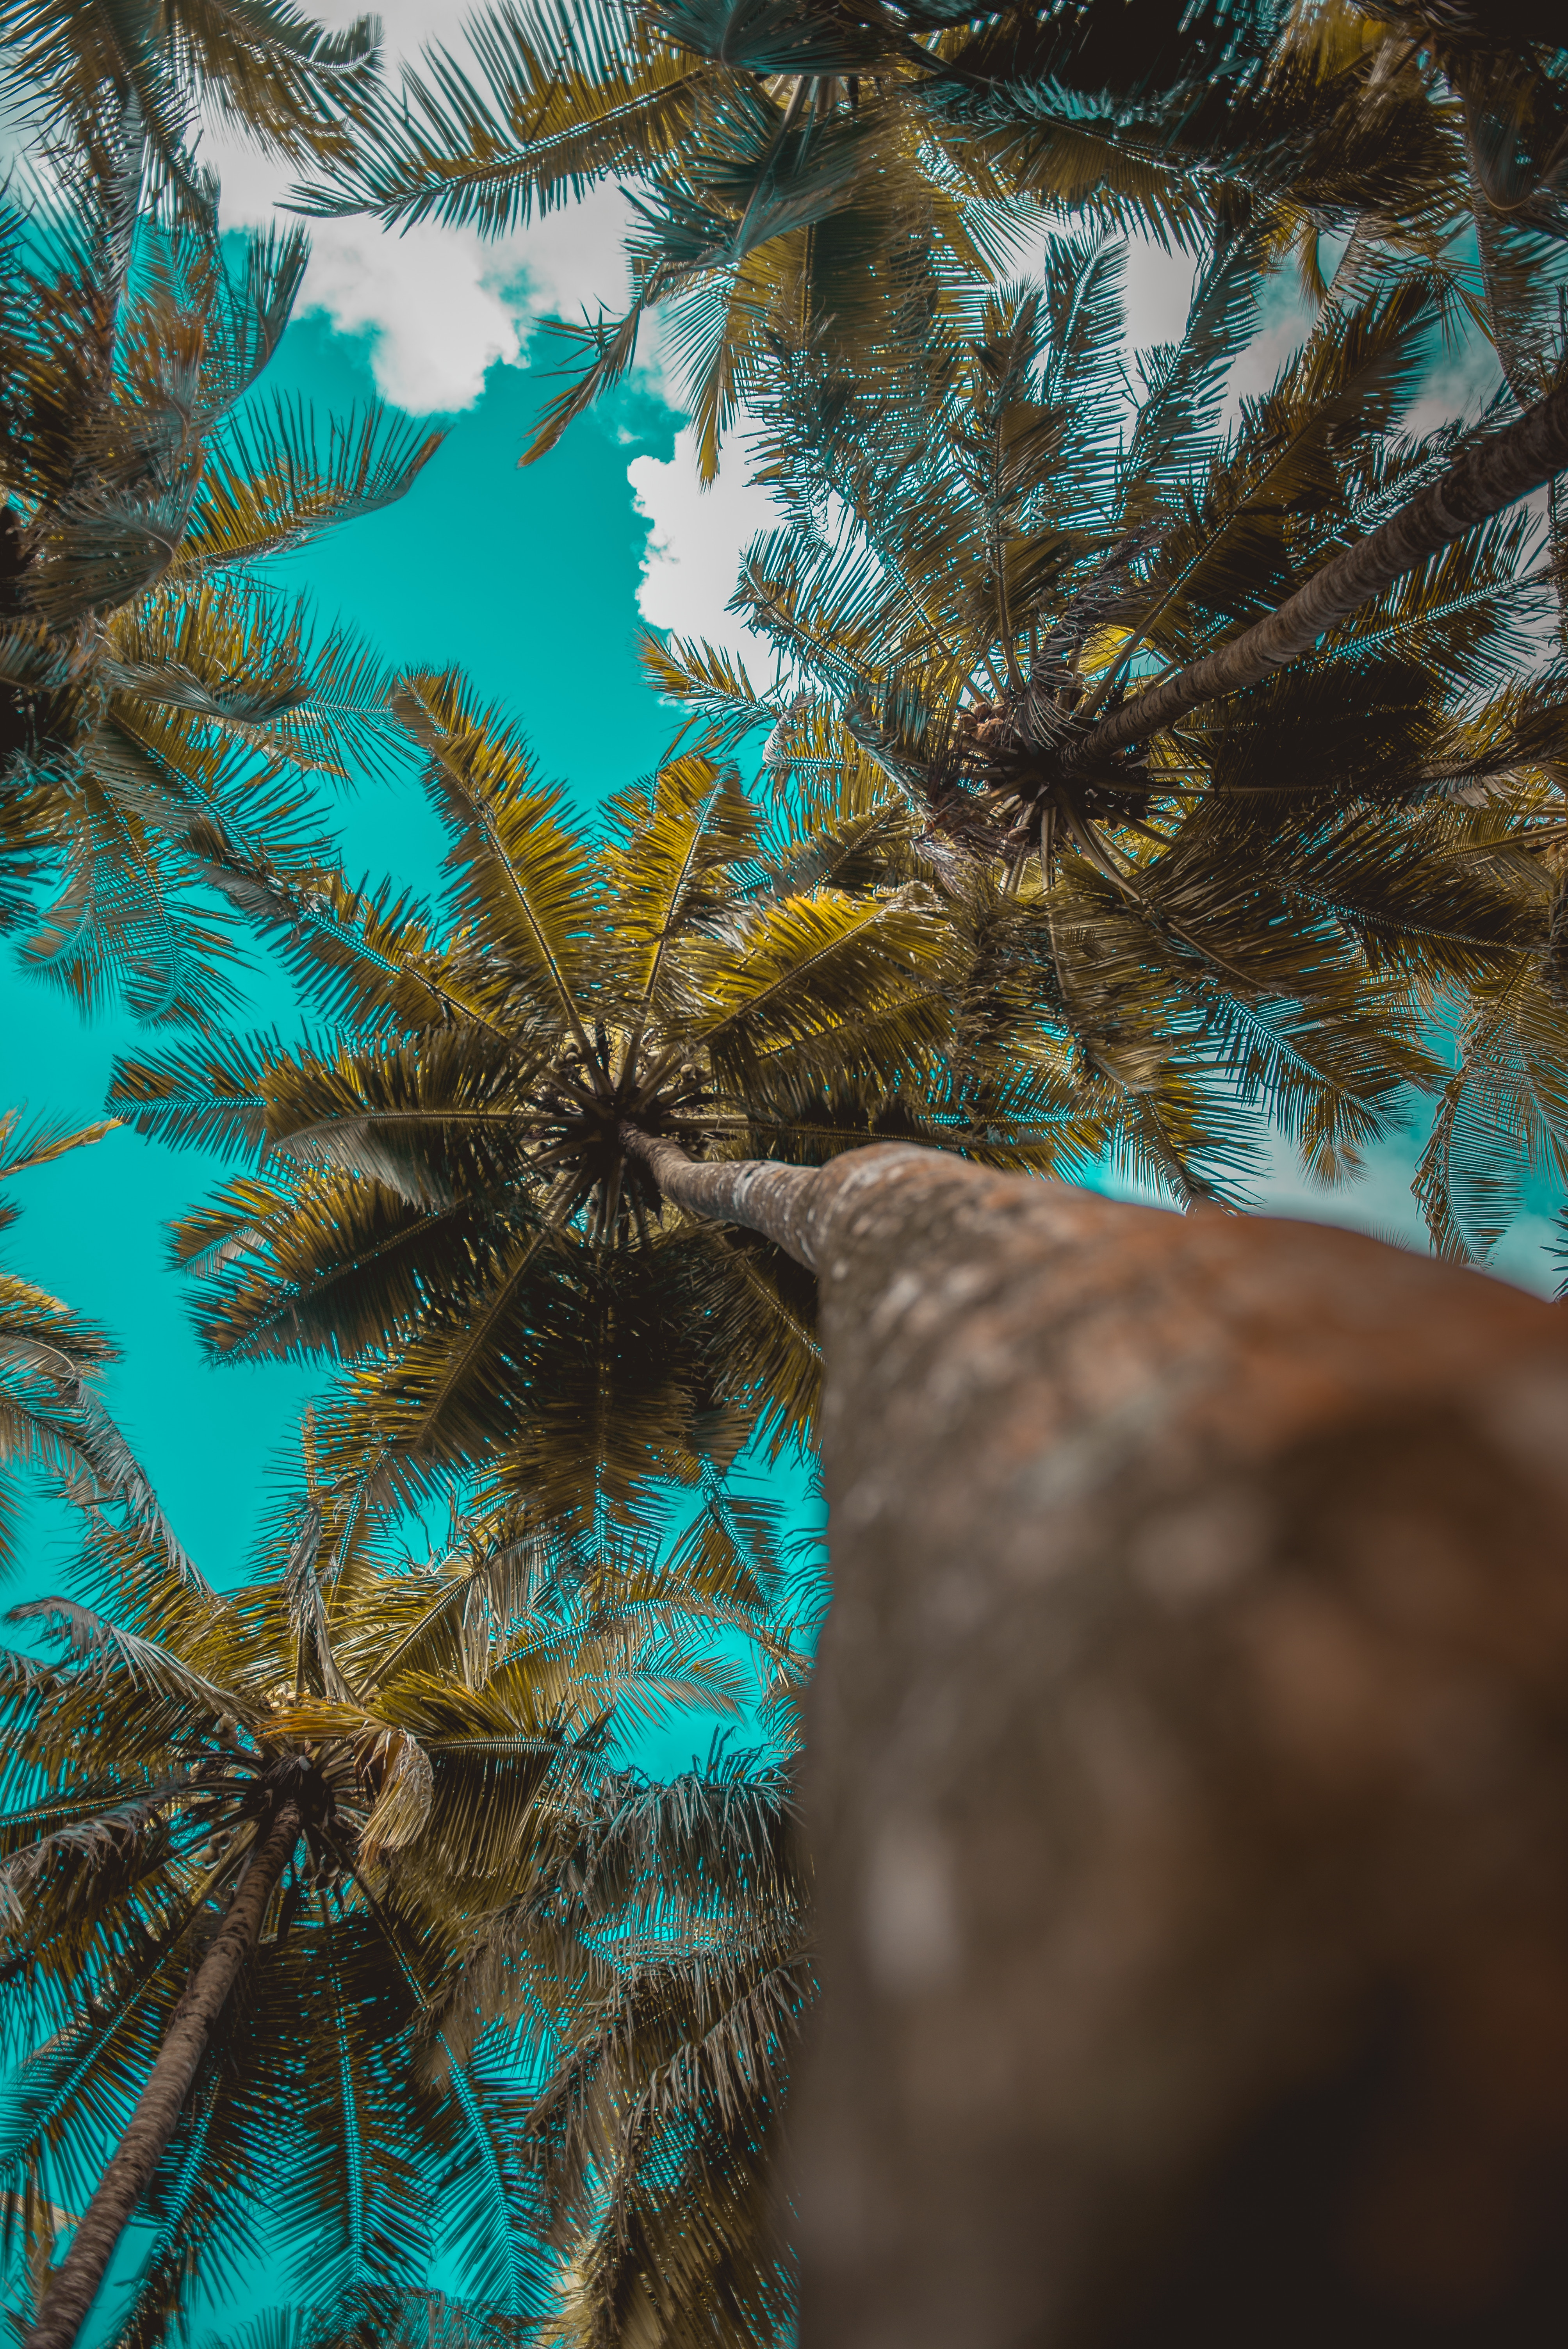 150494 download wallpaper Nature, Trees, Branches, Tropics, Sky, Clouds, Palms screensavers and pictures for free